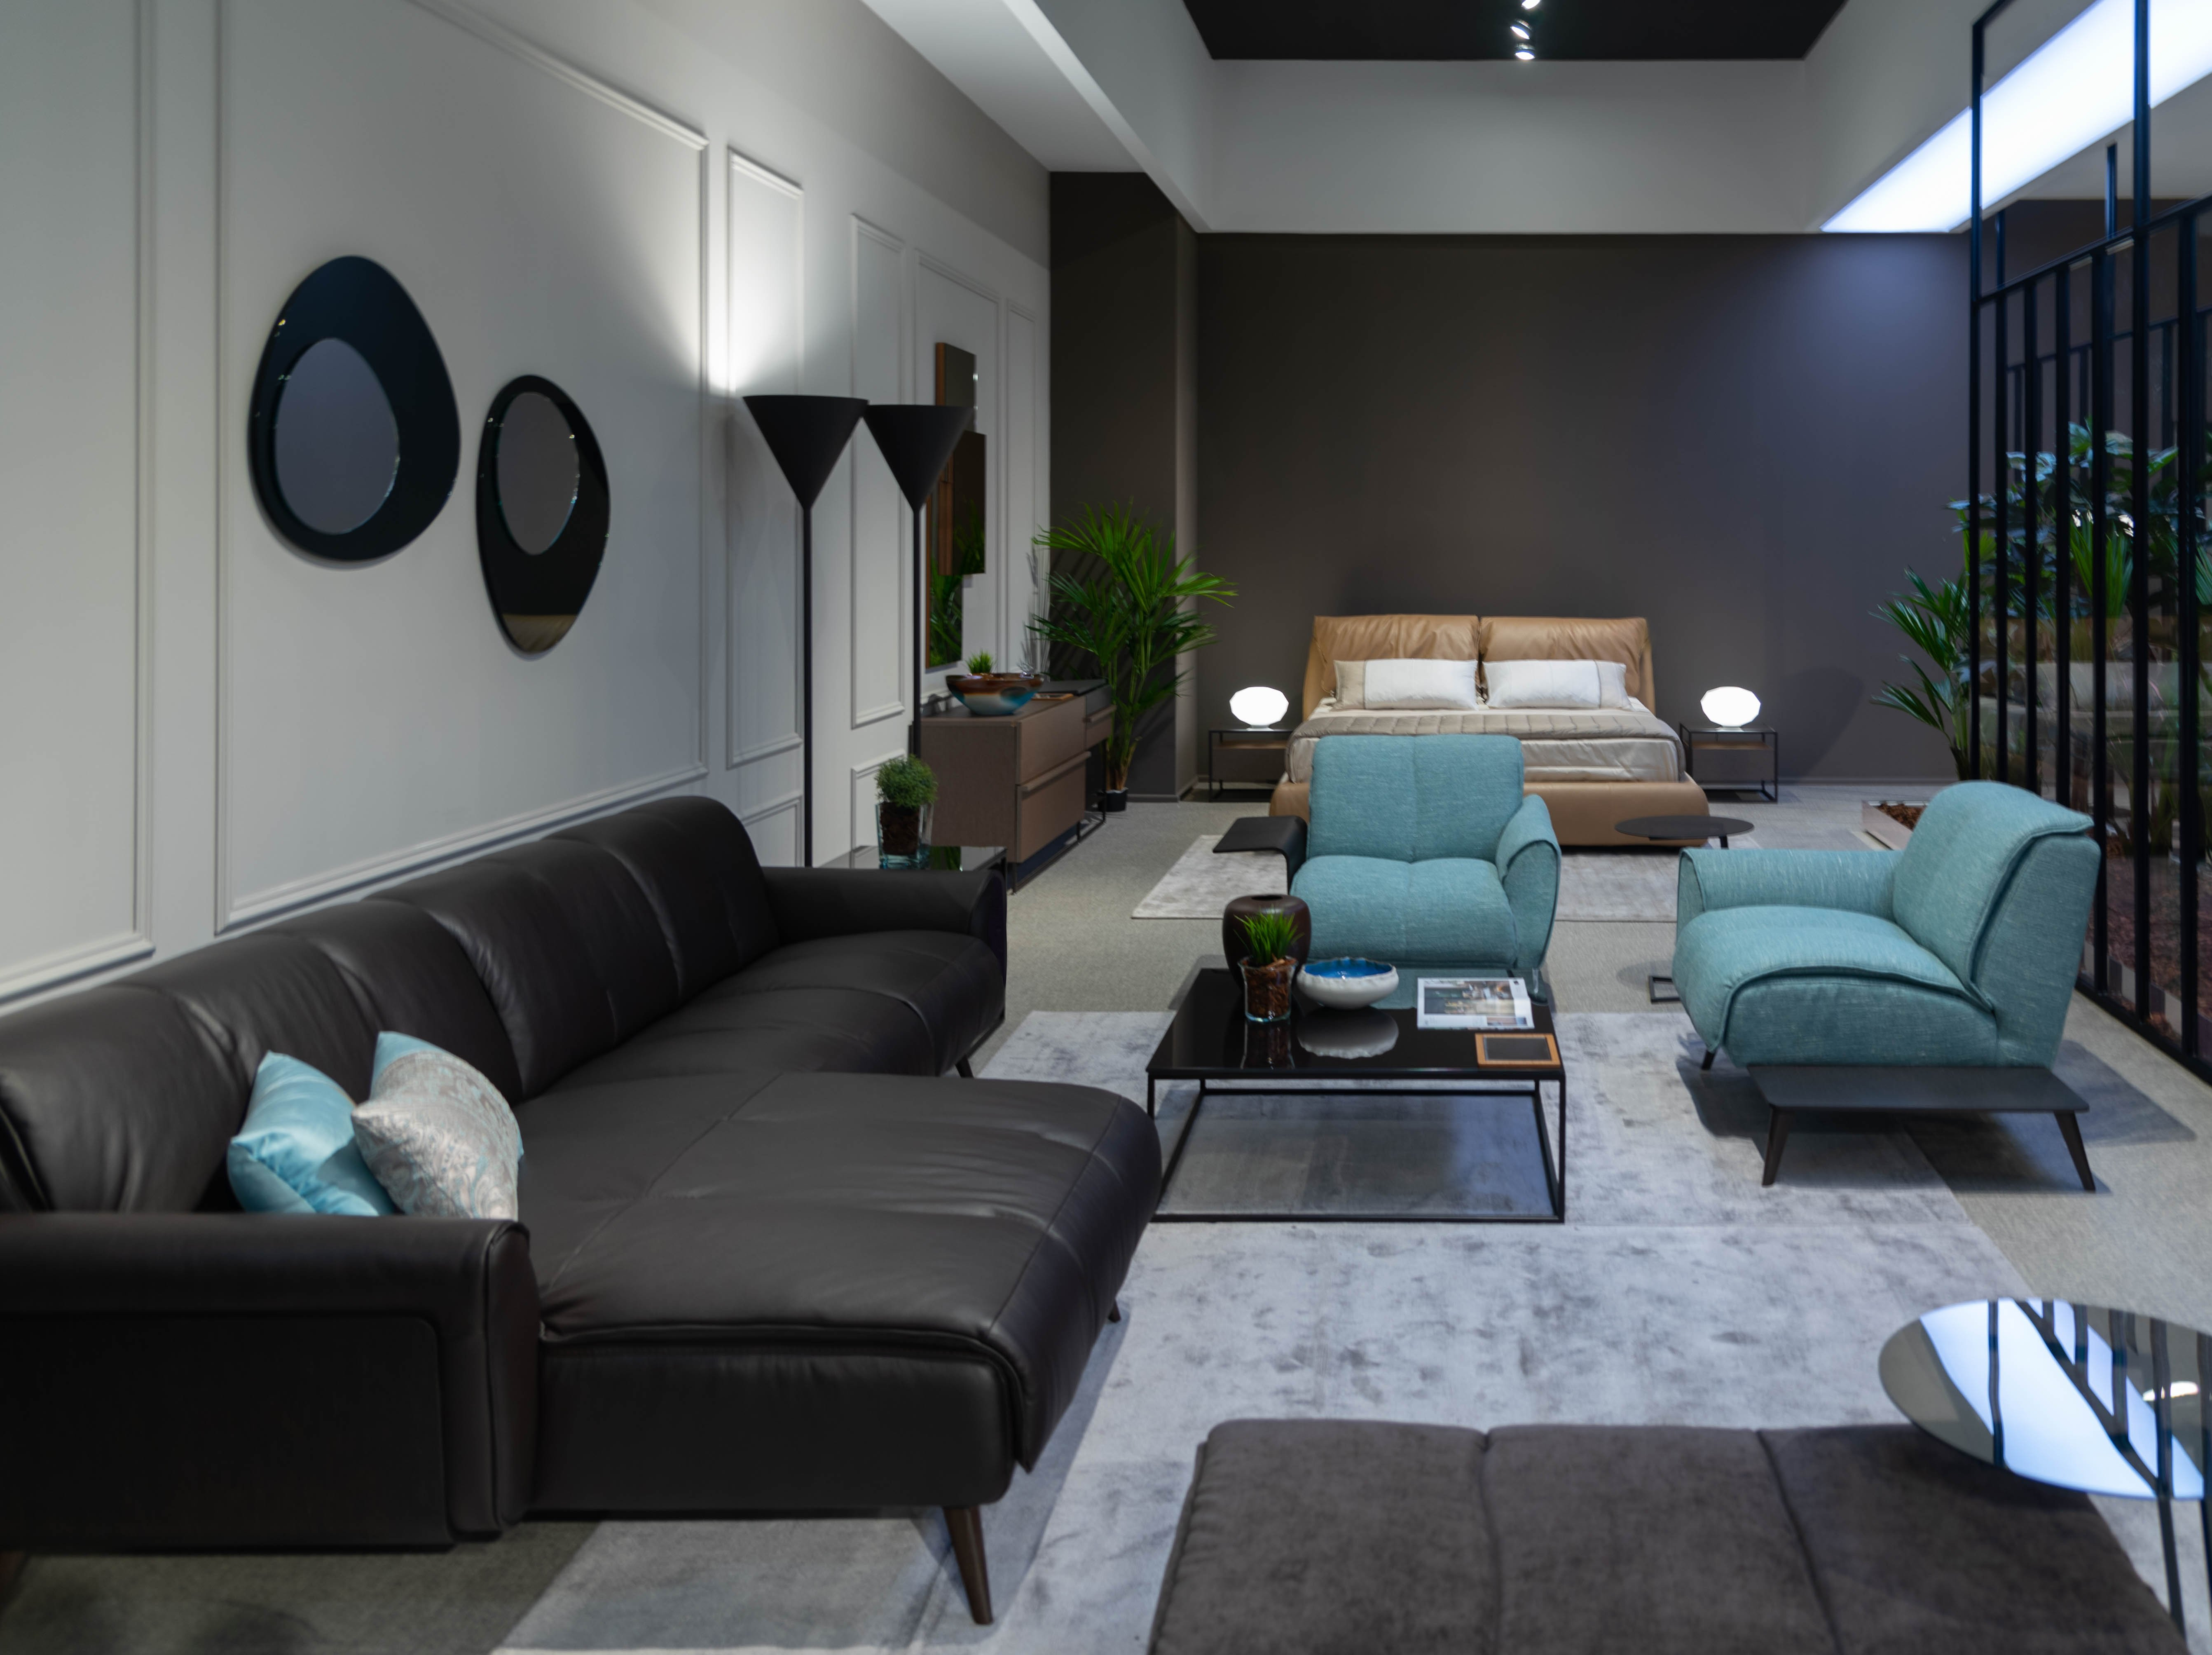 Divani Divani By Natuzzi A Gerenzano Start Franchising Opportunità Di Business